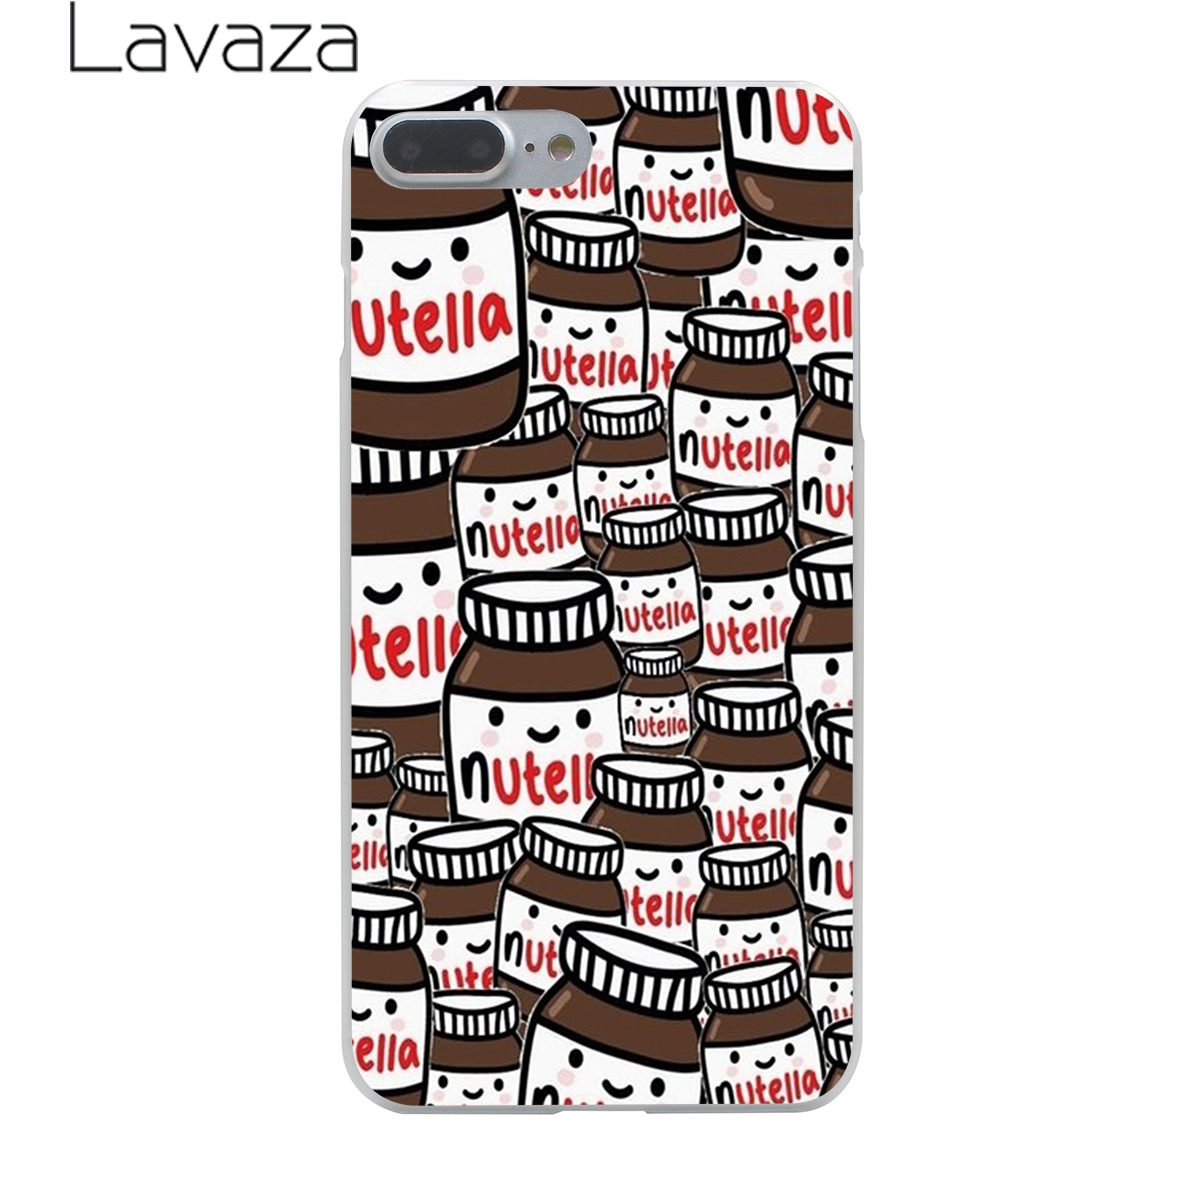 Préférence Lavaza chocolate Food Tumblr Nutella Hard Phone Cover Case for  UP56